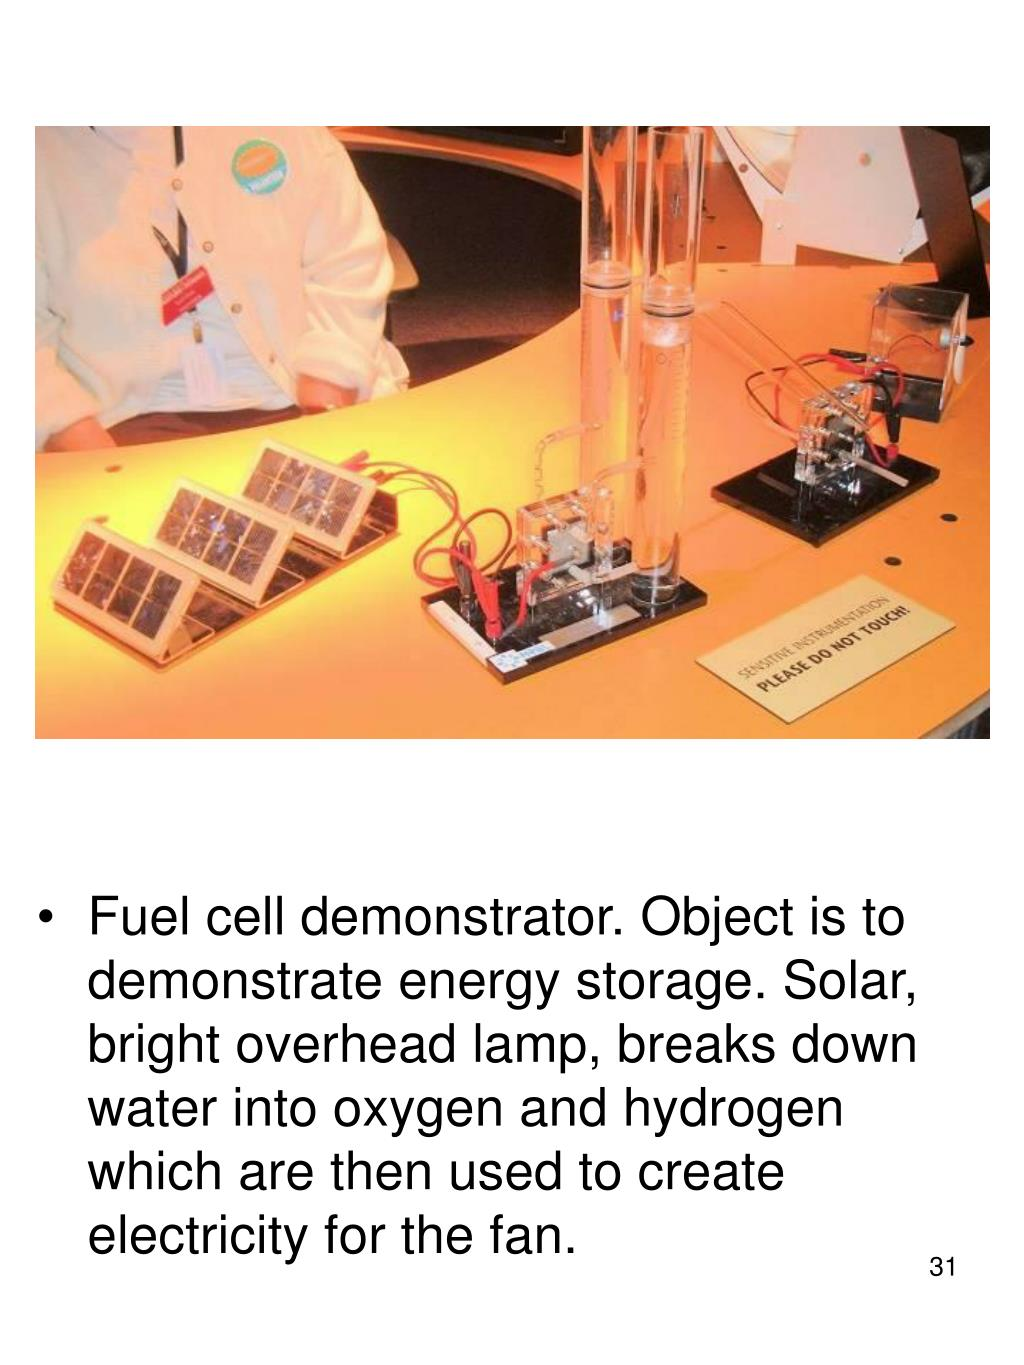 Fuel cell demonstrator. Object is to demonstrate energy storage. Solar, bright overhead lamp, breaks down water into oxygen and hydrogen which are then used to create electricity for the fan.